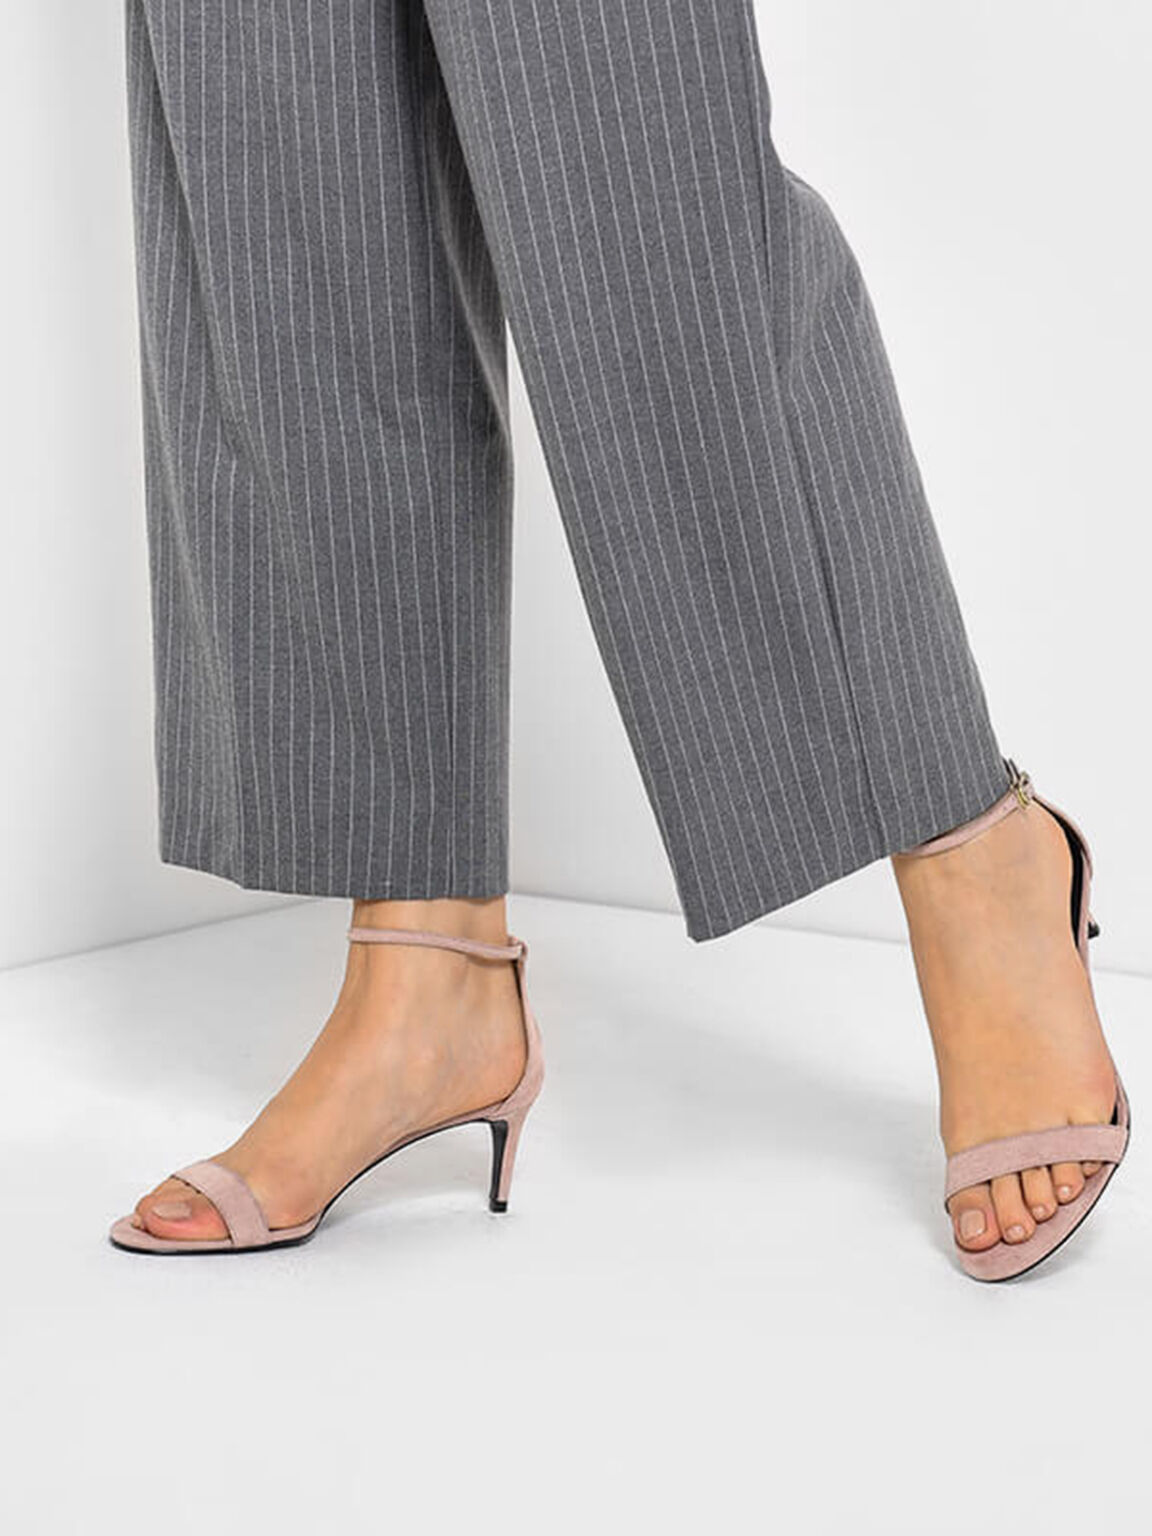 Classic Ankle Strap Heels, Taupe, hi-res